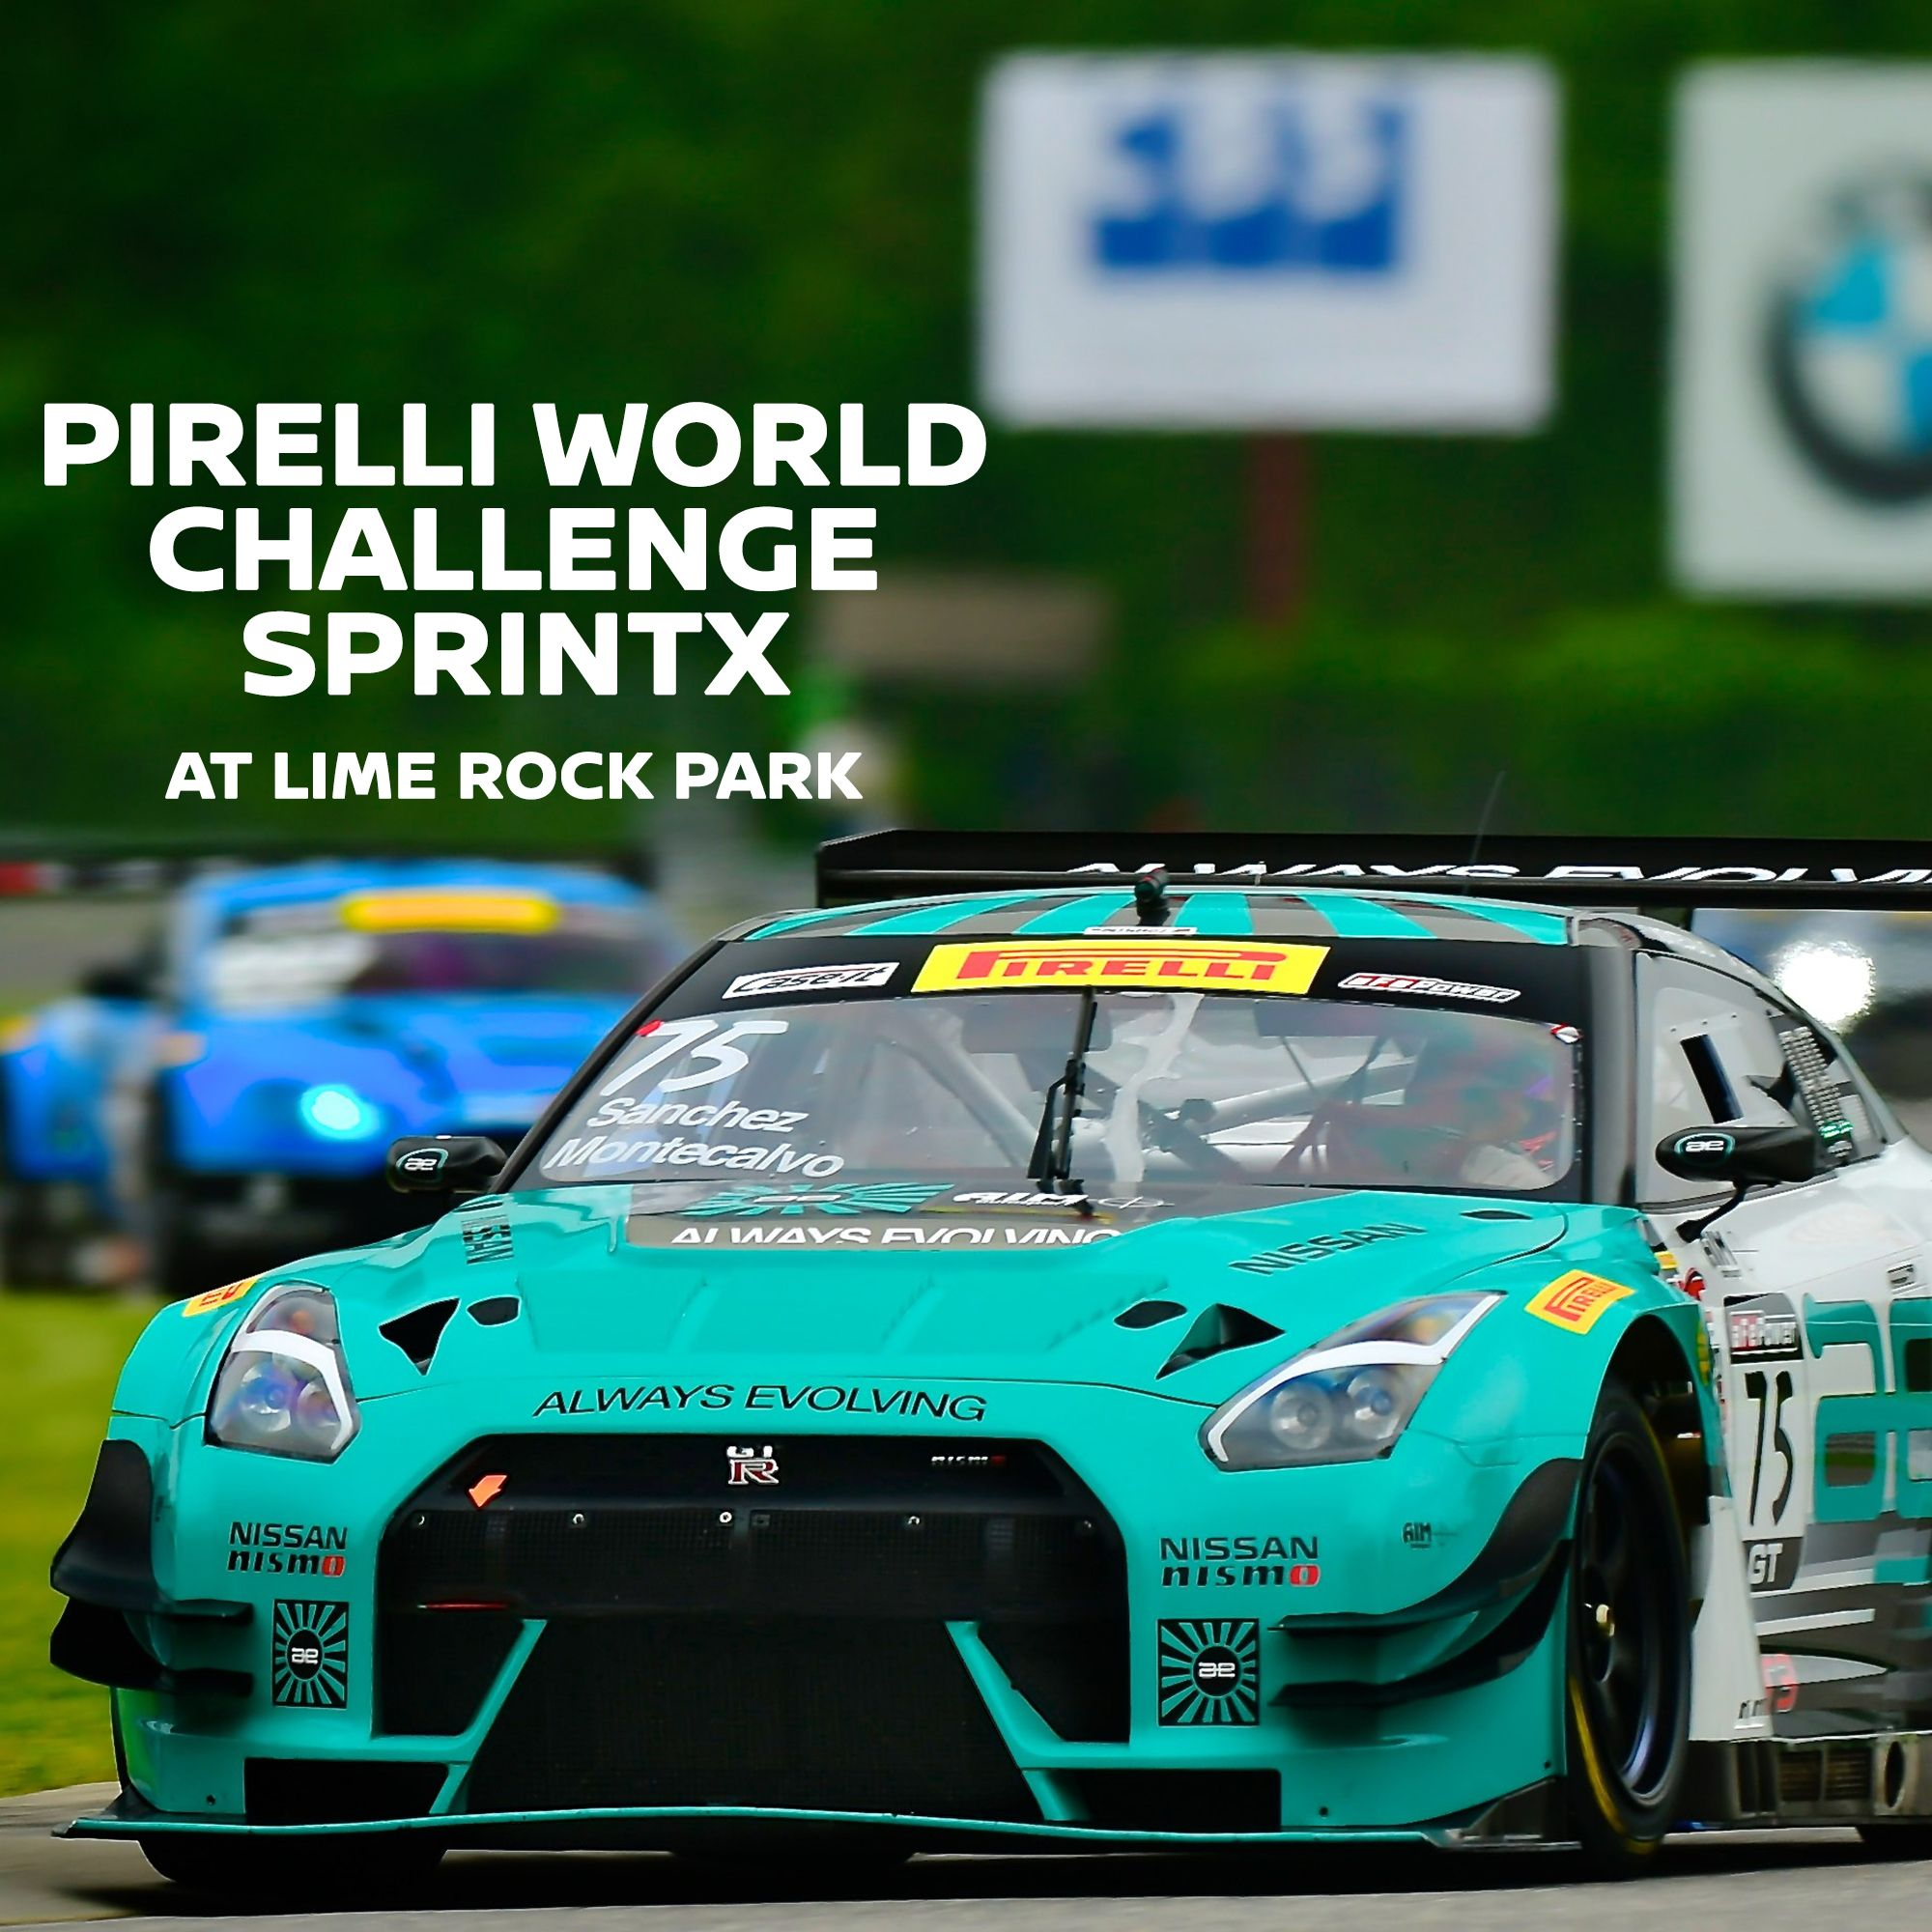 NISMO RACING: The Nissan GT-R team scores second place at Pirelli World Challenge SprintX! READ MORE: (POST PIC AND LINK TO http://nissannews.com/en-US/nissan/usa/releases/pair-of-podiums-for-gt-academy-driver-in-pirelli-world-challenge)   CREDIT: http://nissannews.com/en-US/nissan/usa/releases/pair-of-podiums-for-gt-academy-driver-in-pirelli-world-challenge